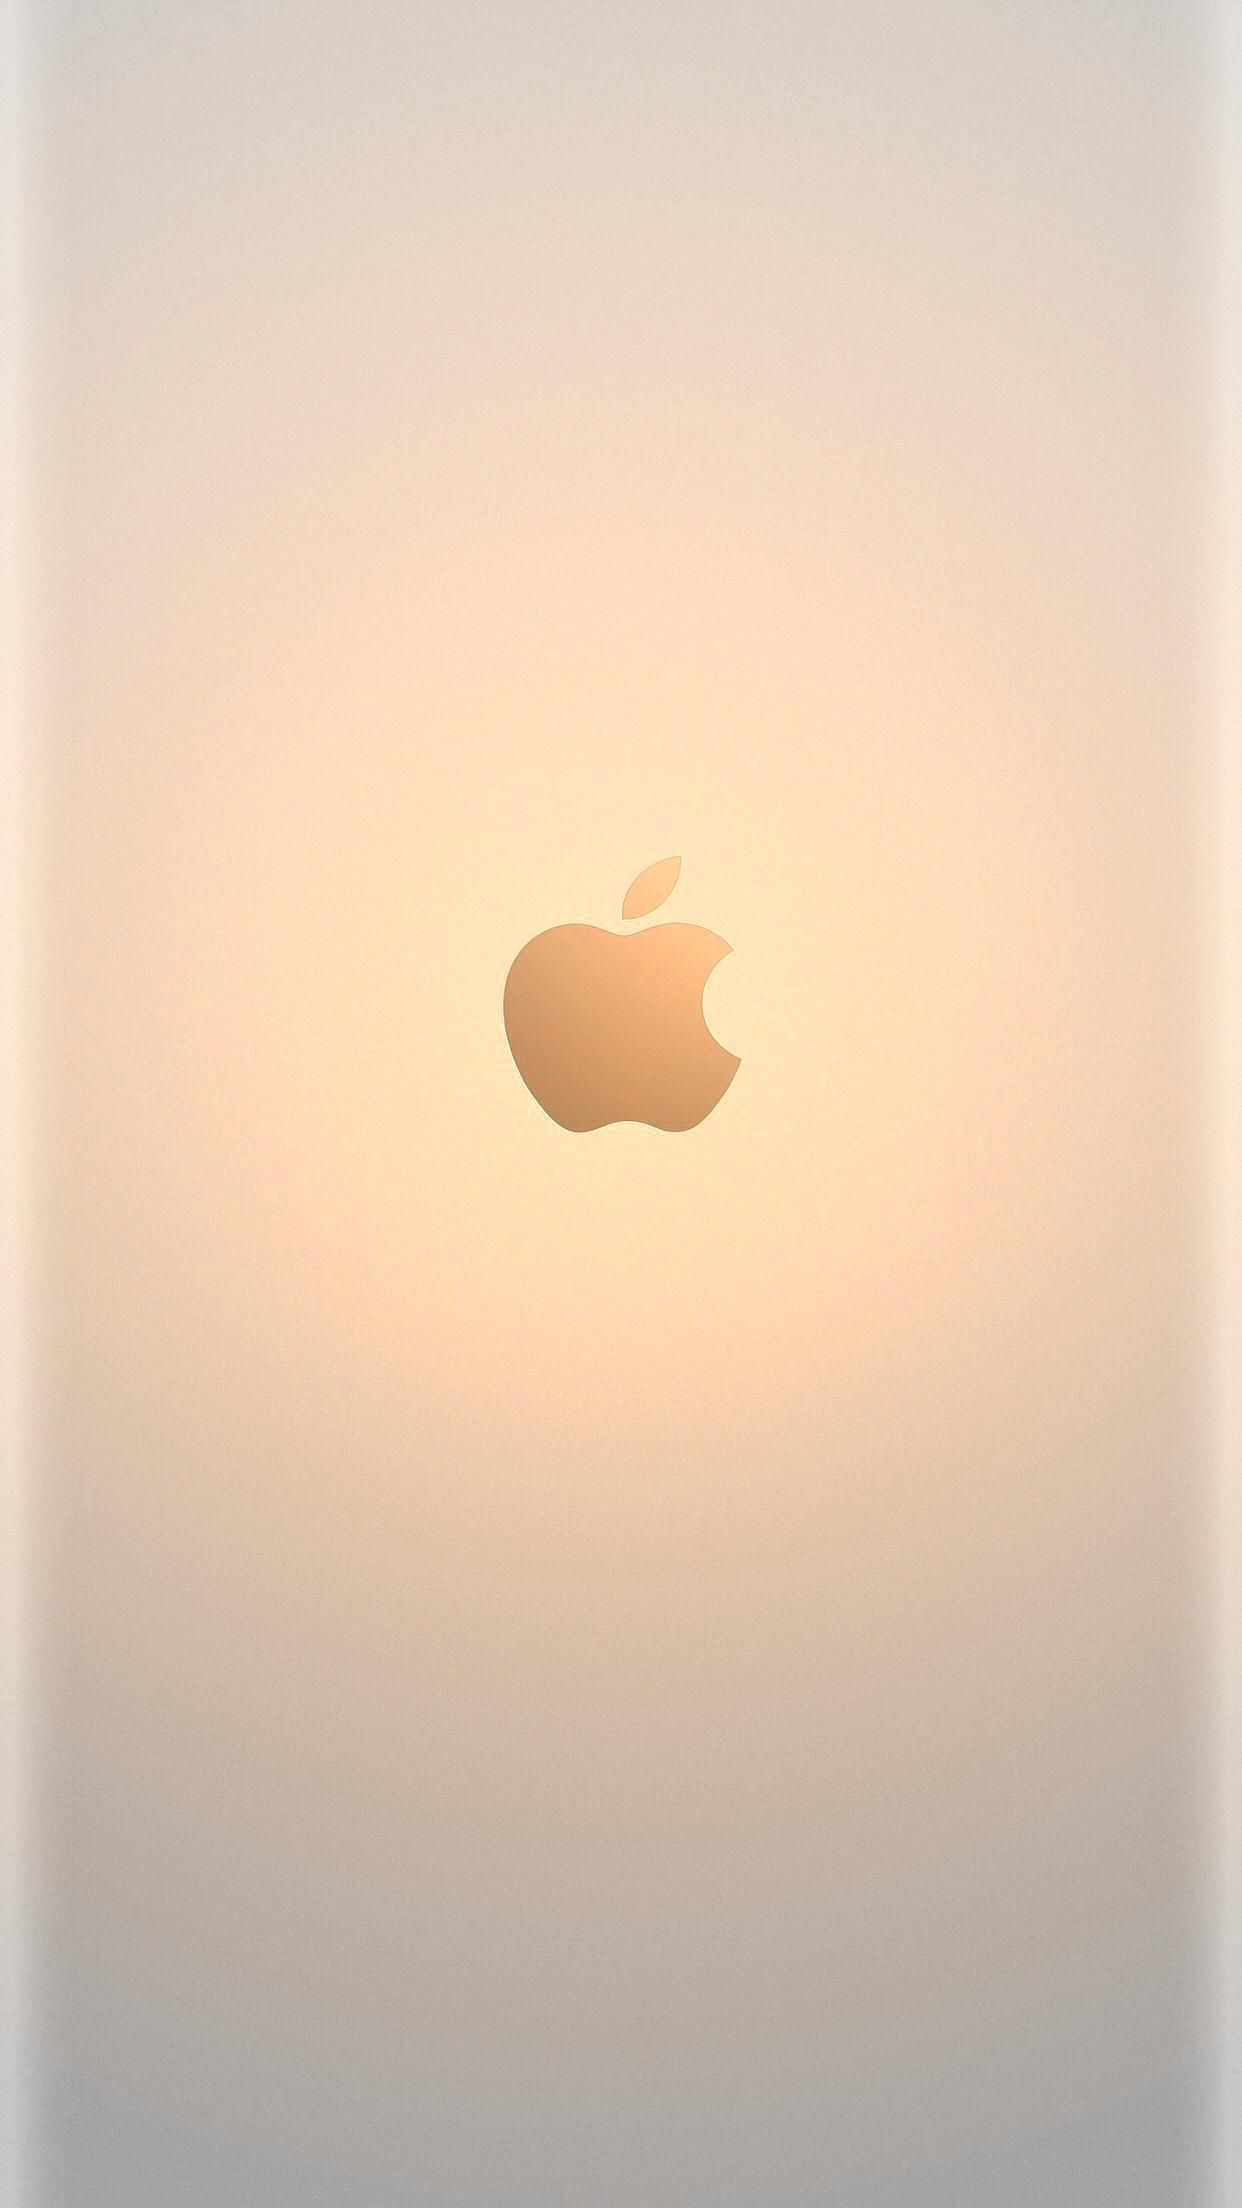 Gold Iphone Gold Wallpaper Hd For Iphone 7 Gold Wallpaper Iphone Apple Wallpaper Iphone Rose Gold Wallpaper